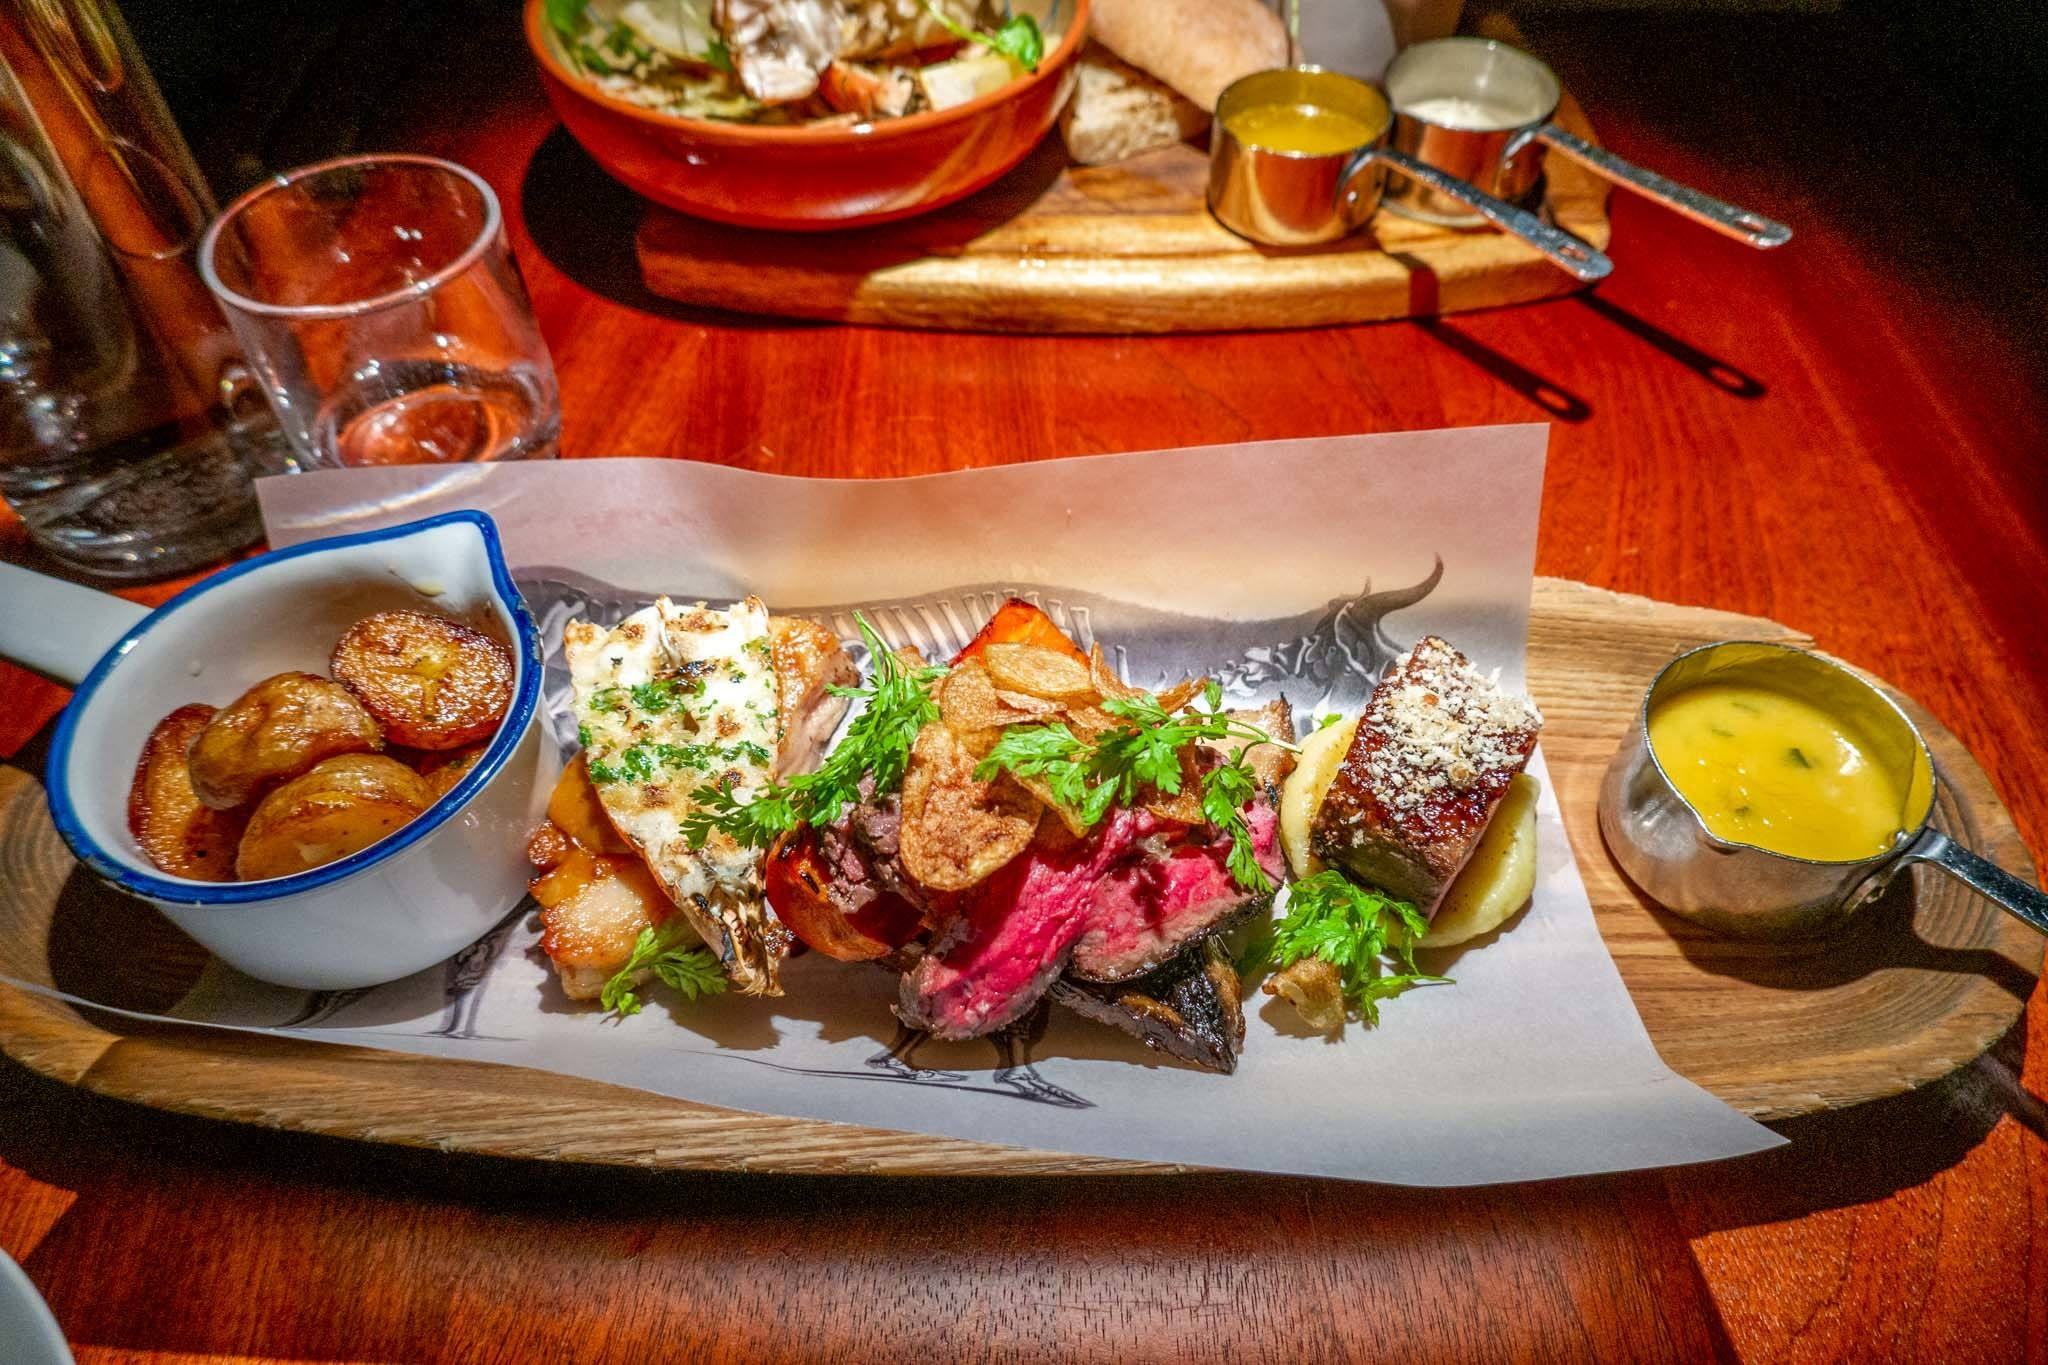 Grill platter of local Icelandic foods at the Food Cellar in Reykjavik